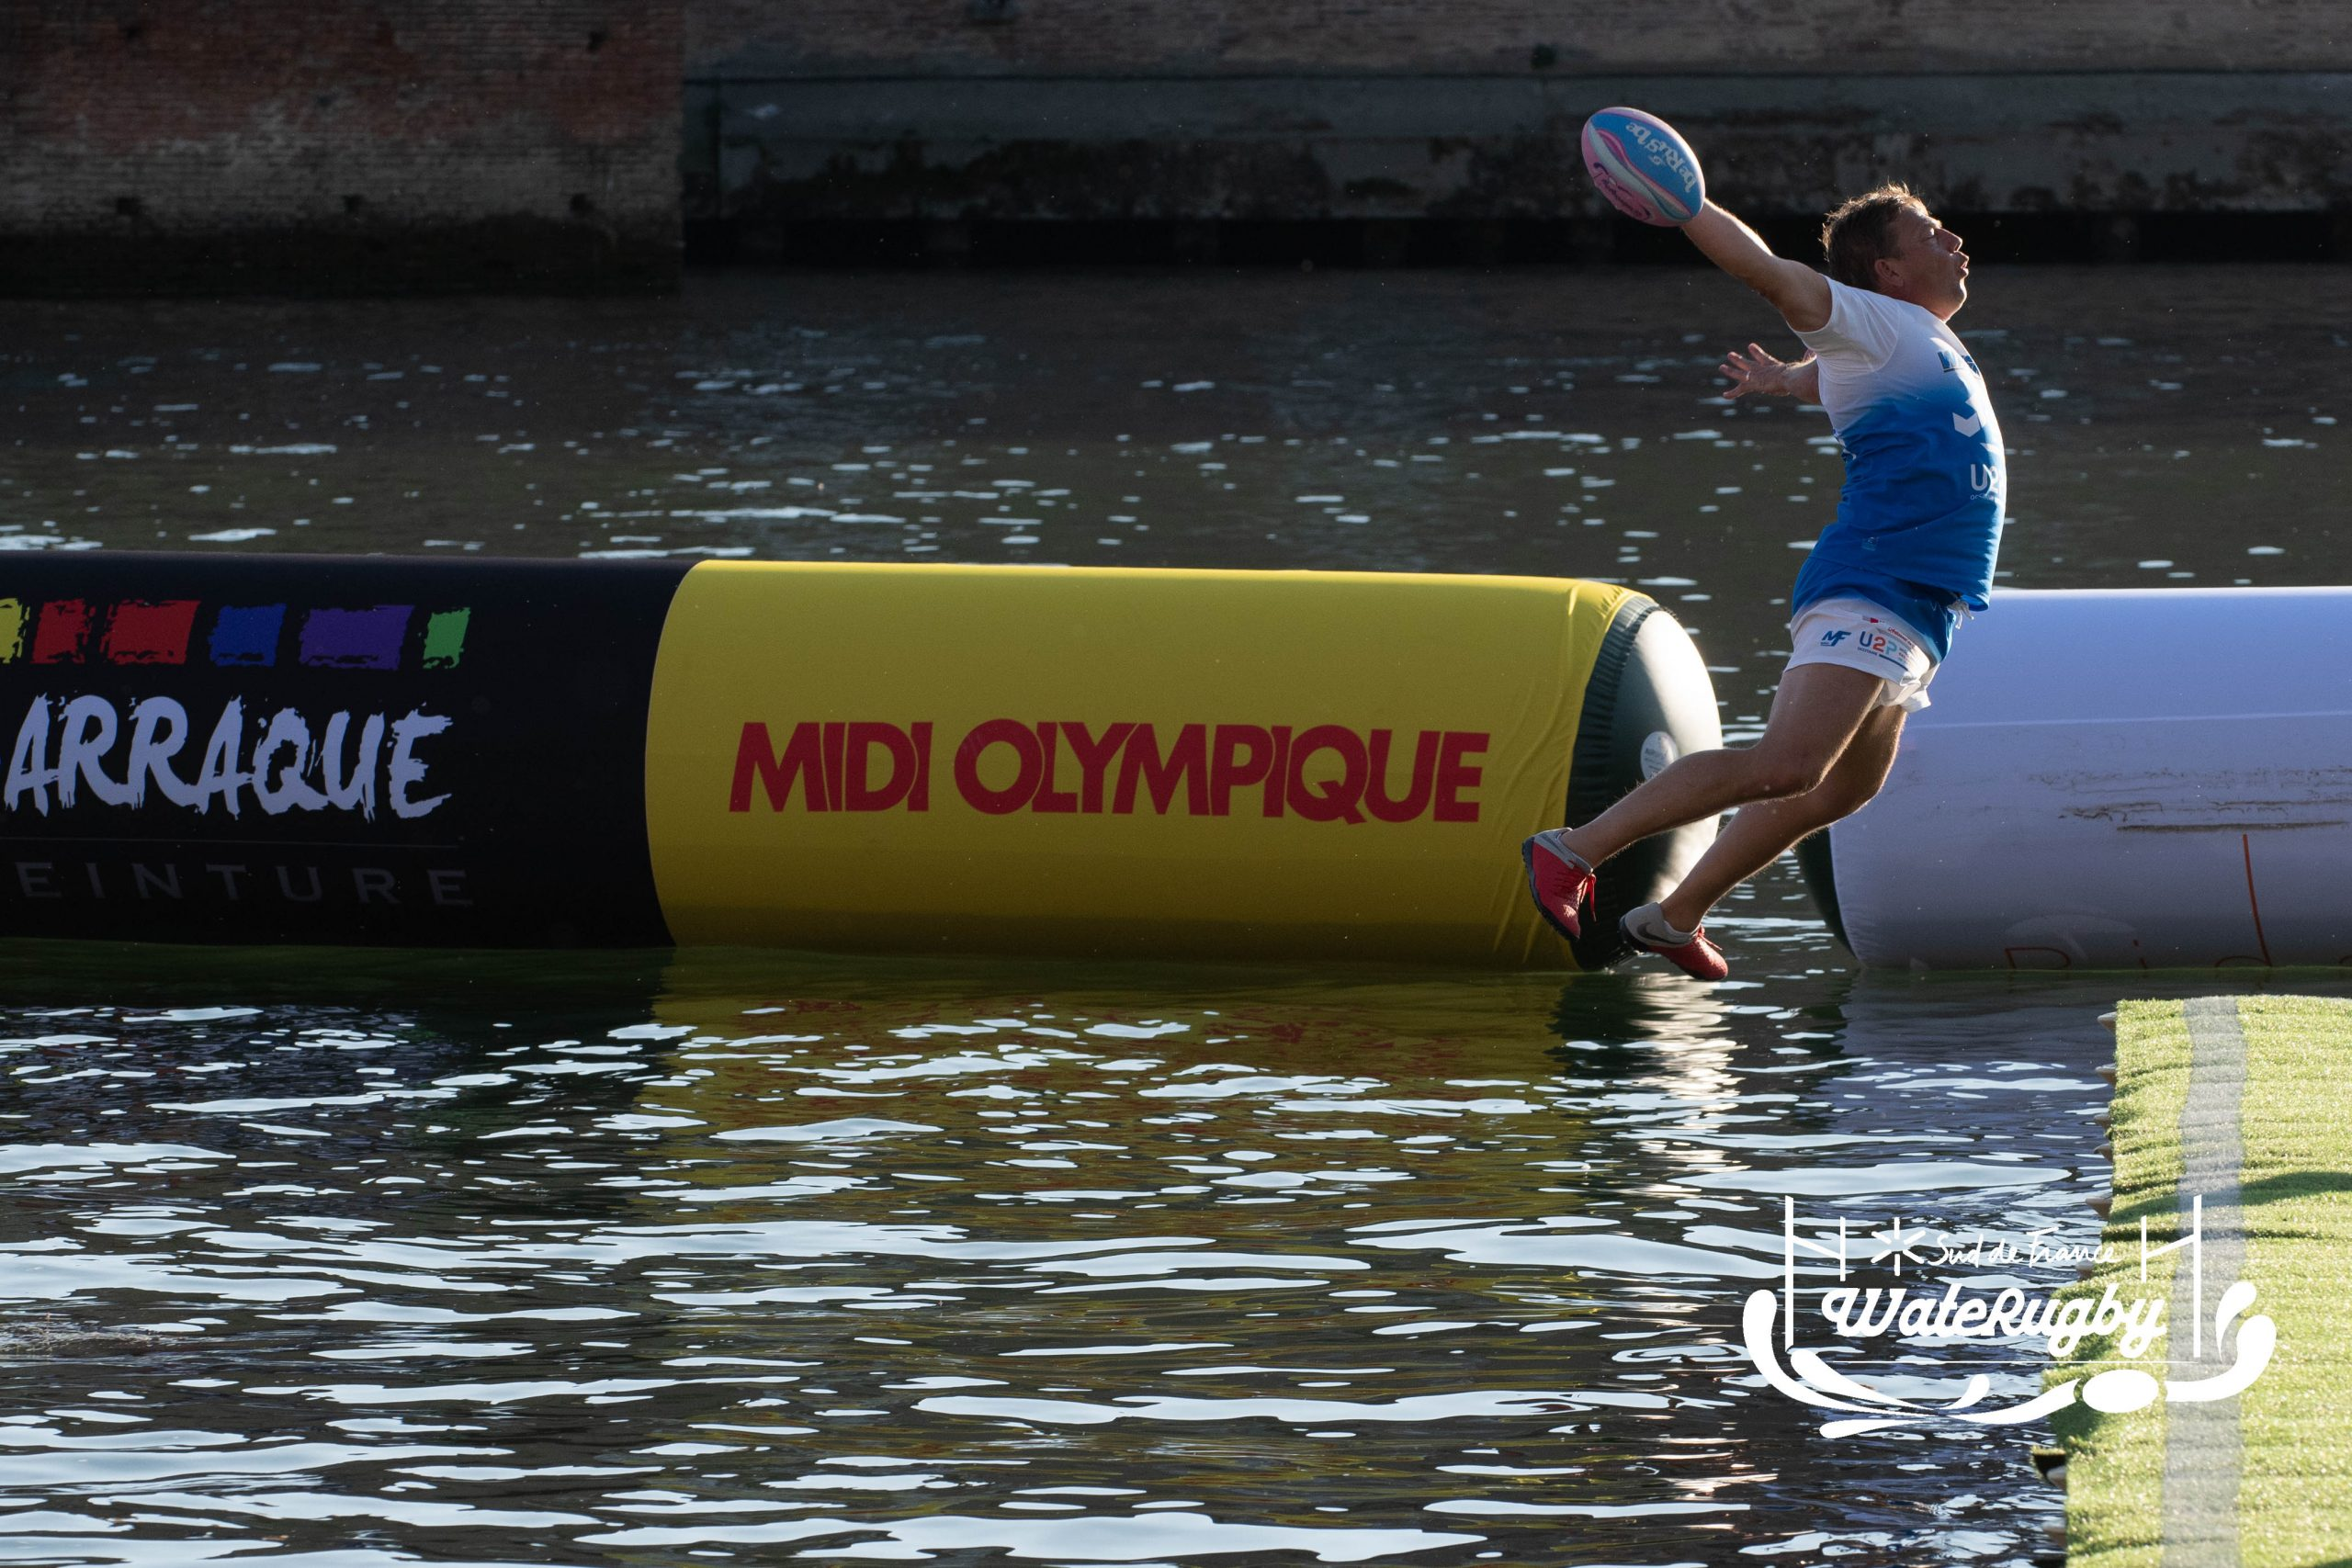 Waterugby_2020